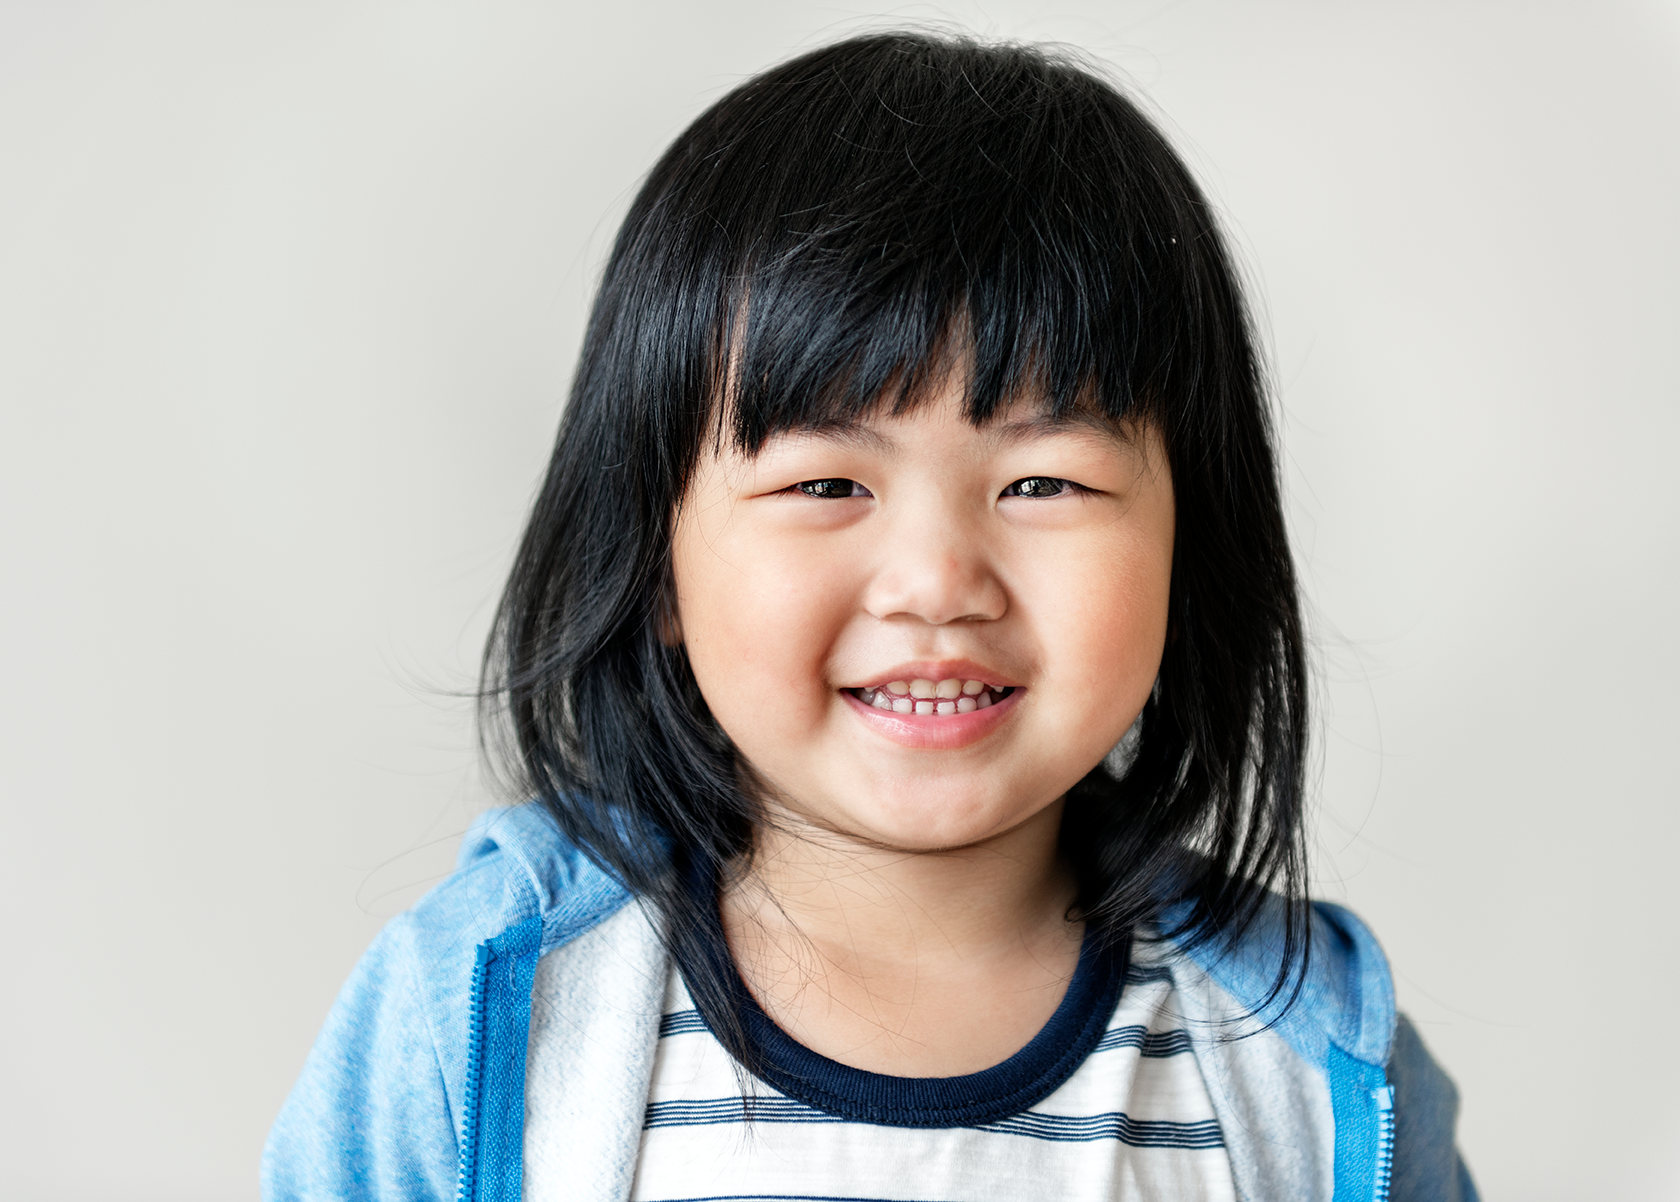 portrait-of-cheerful-asian-girl-PPGTVAU-2.png